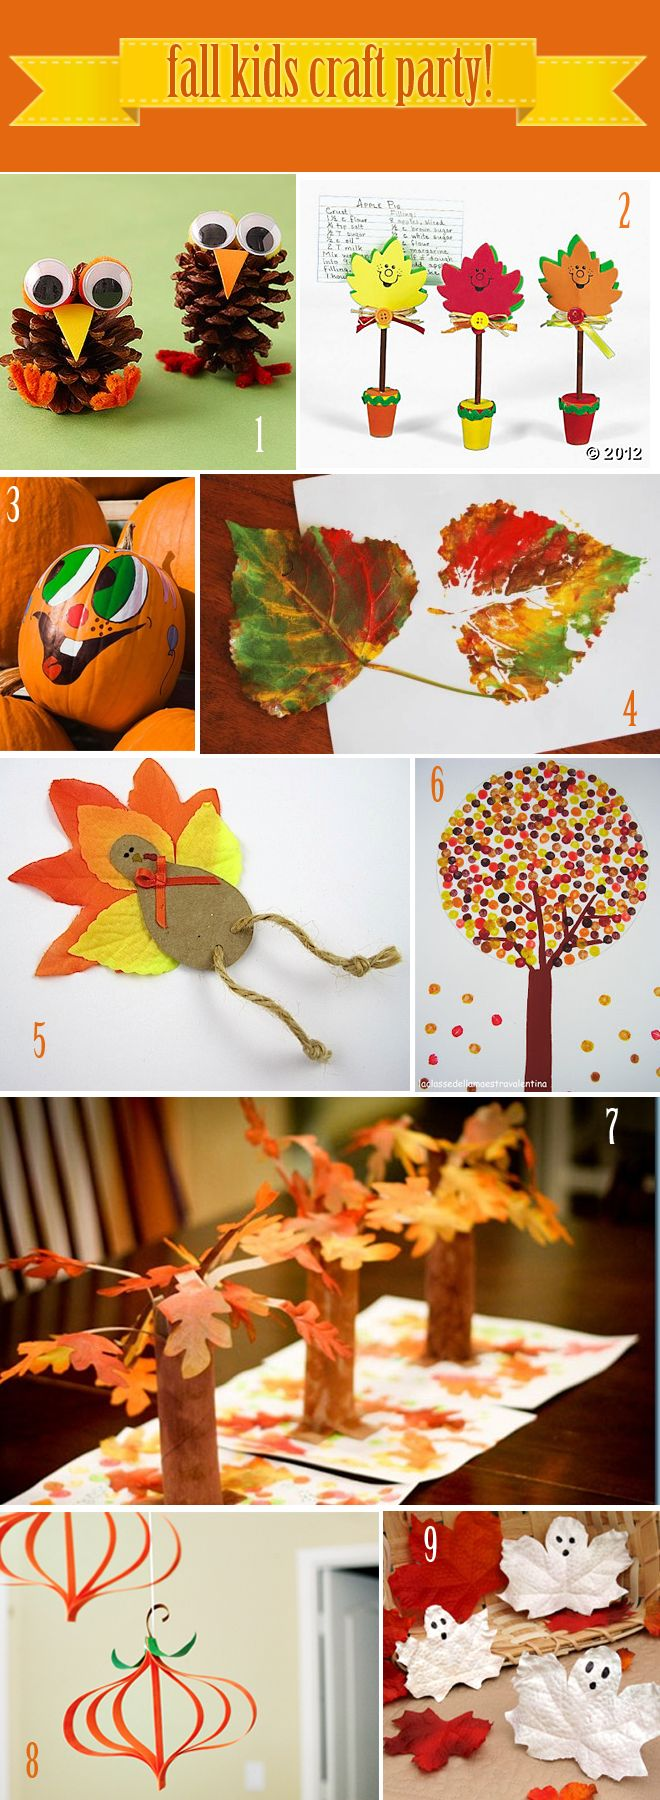 Cute Fall Kids Craft Ideas!!